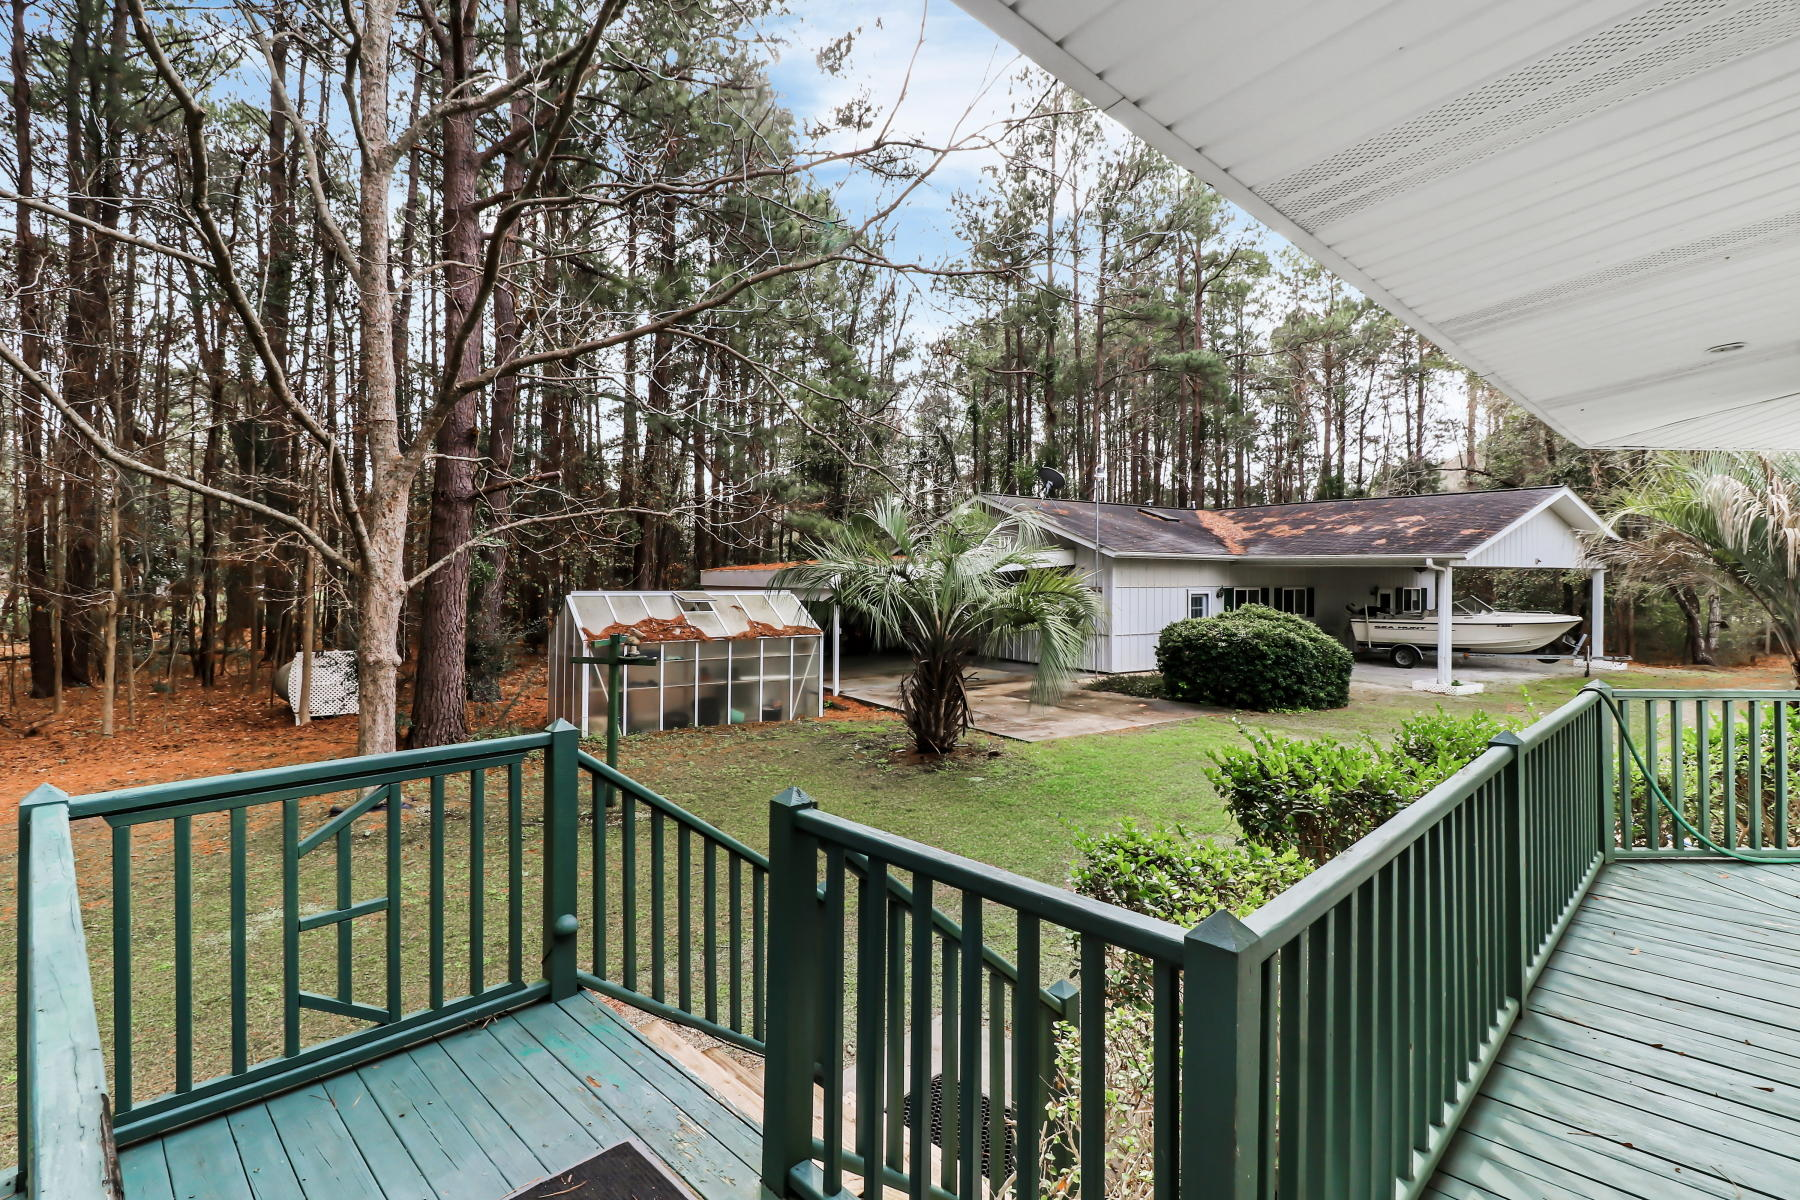 Plantation II Homes For Sale - 141 Meredith, Eutawville, SC - 37